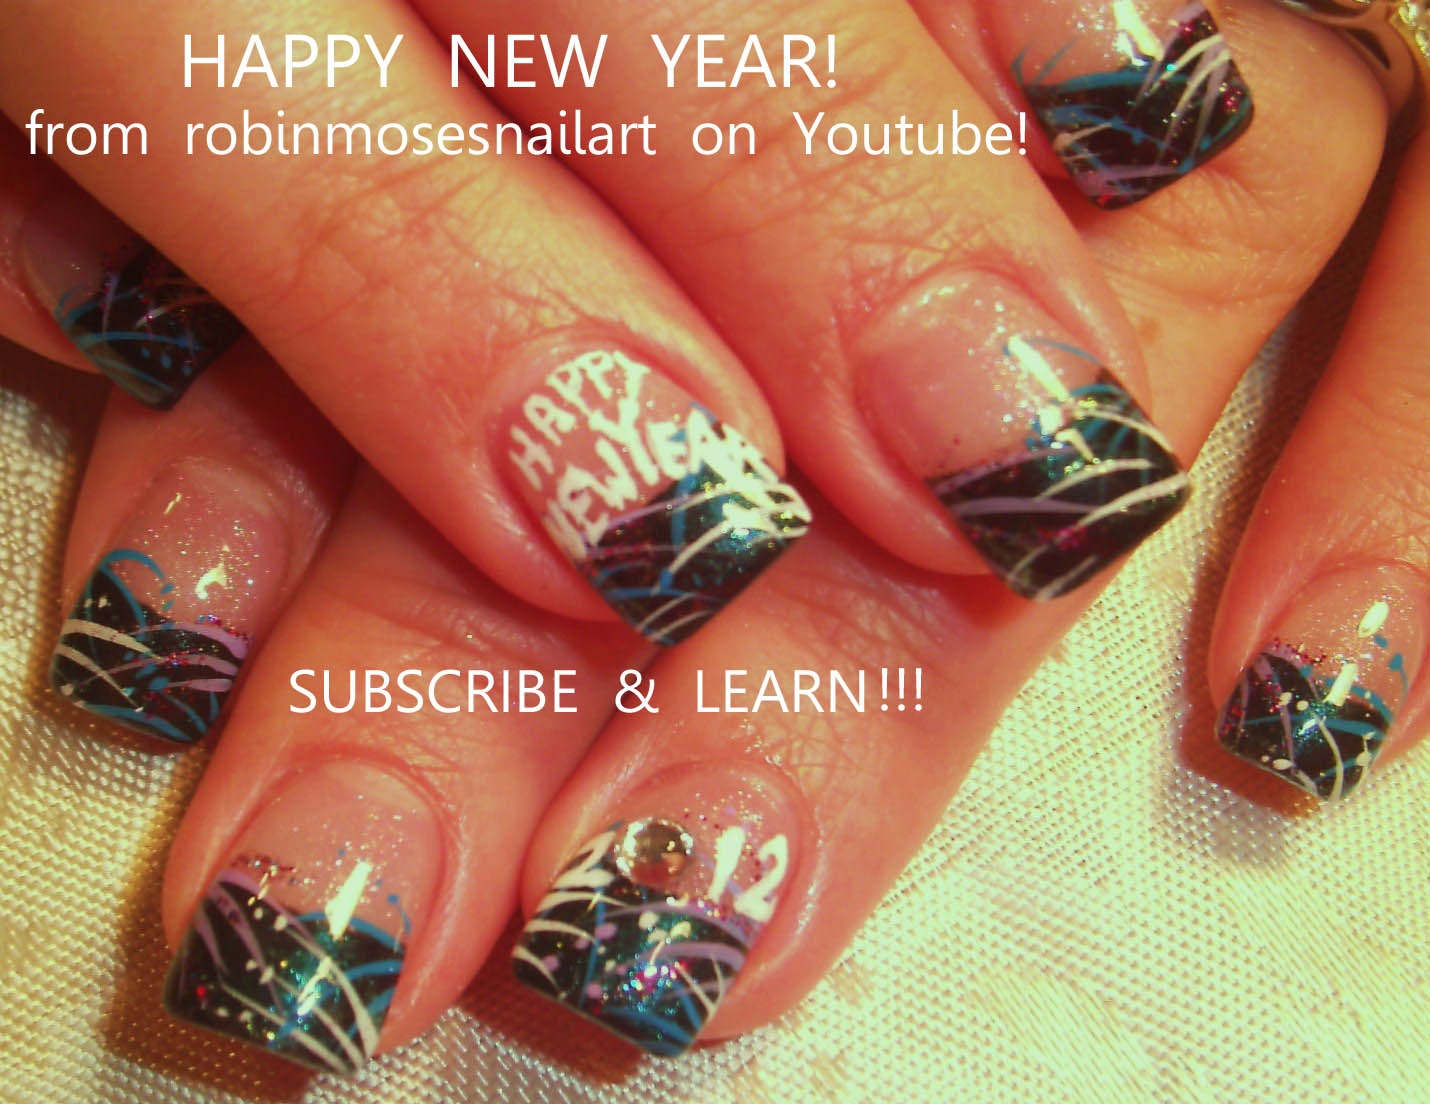 Nail Design Ideas 2012 nail art ideas and artifical nail design paki indian fashion long nails art Easy Nye New Years Eve Nail Art For 2012 Robin Moses Nailart Design